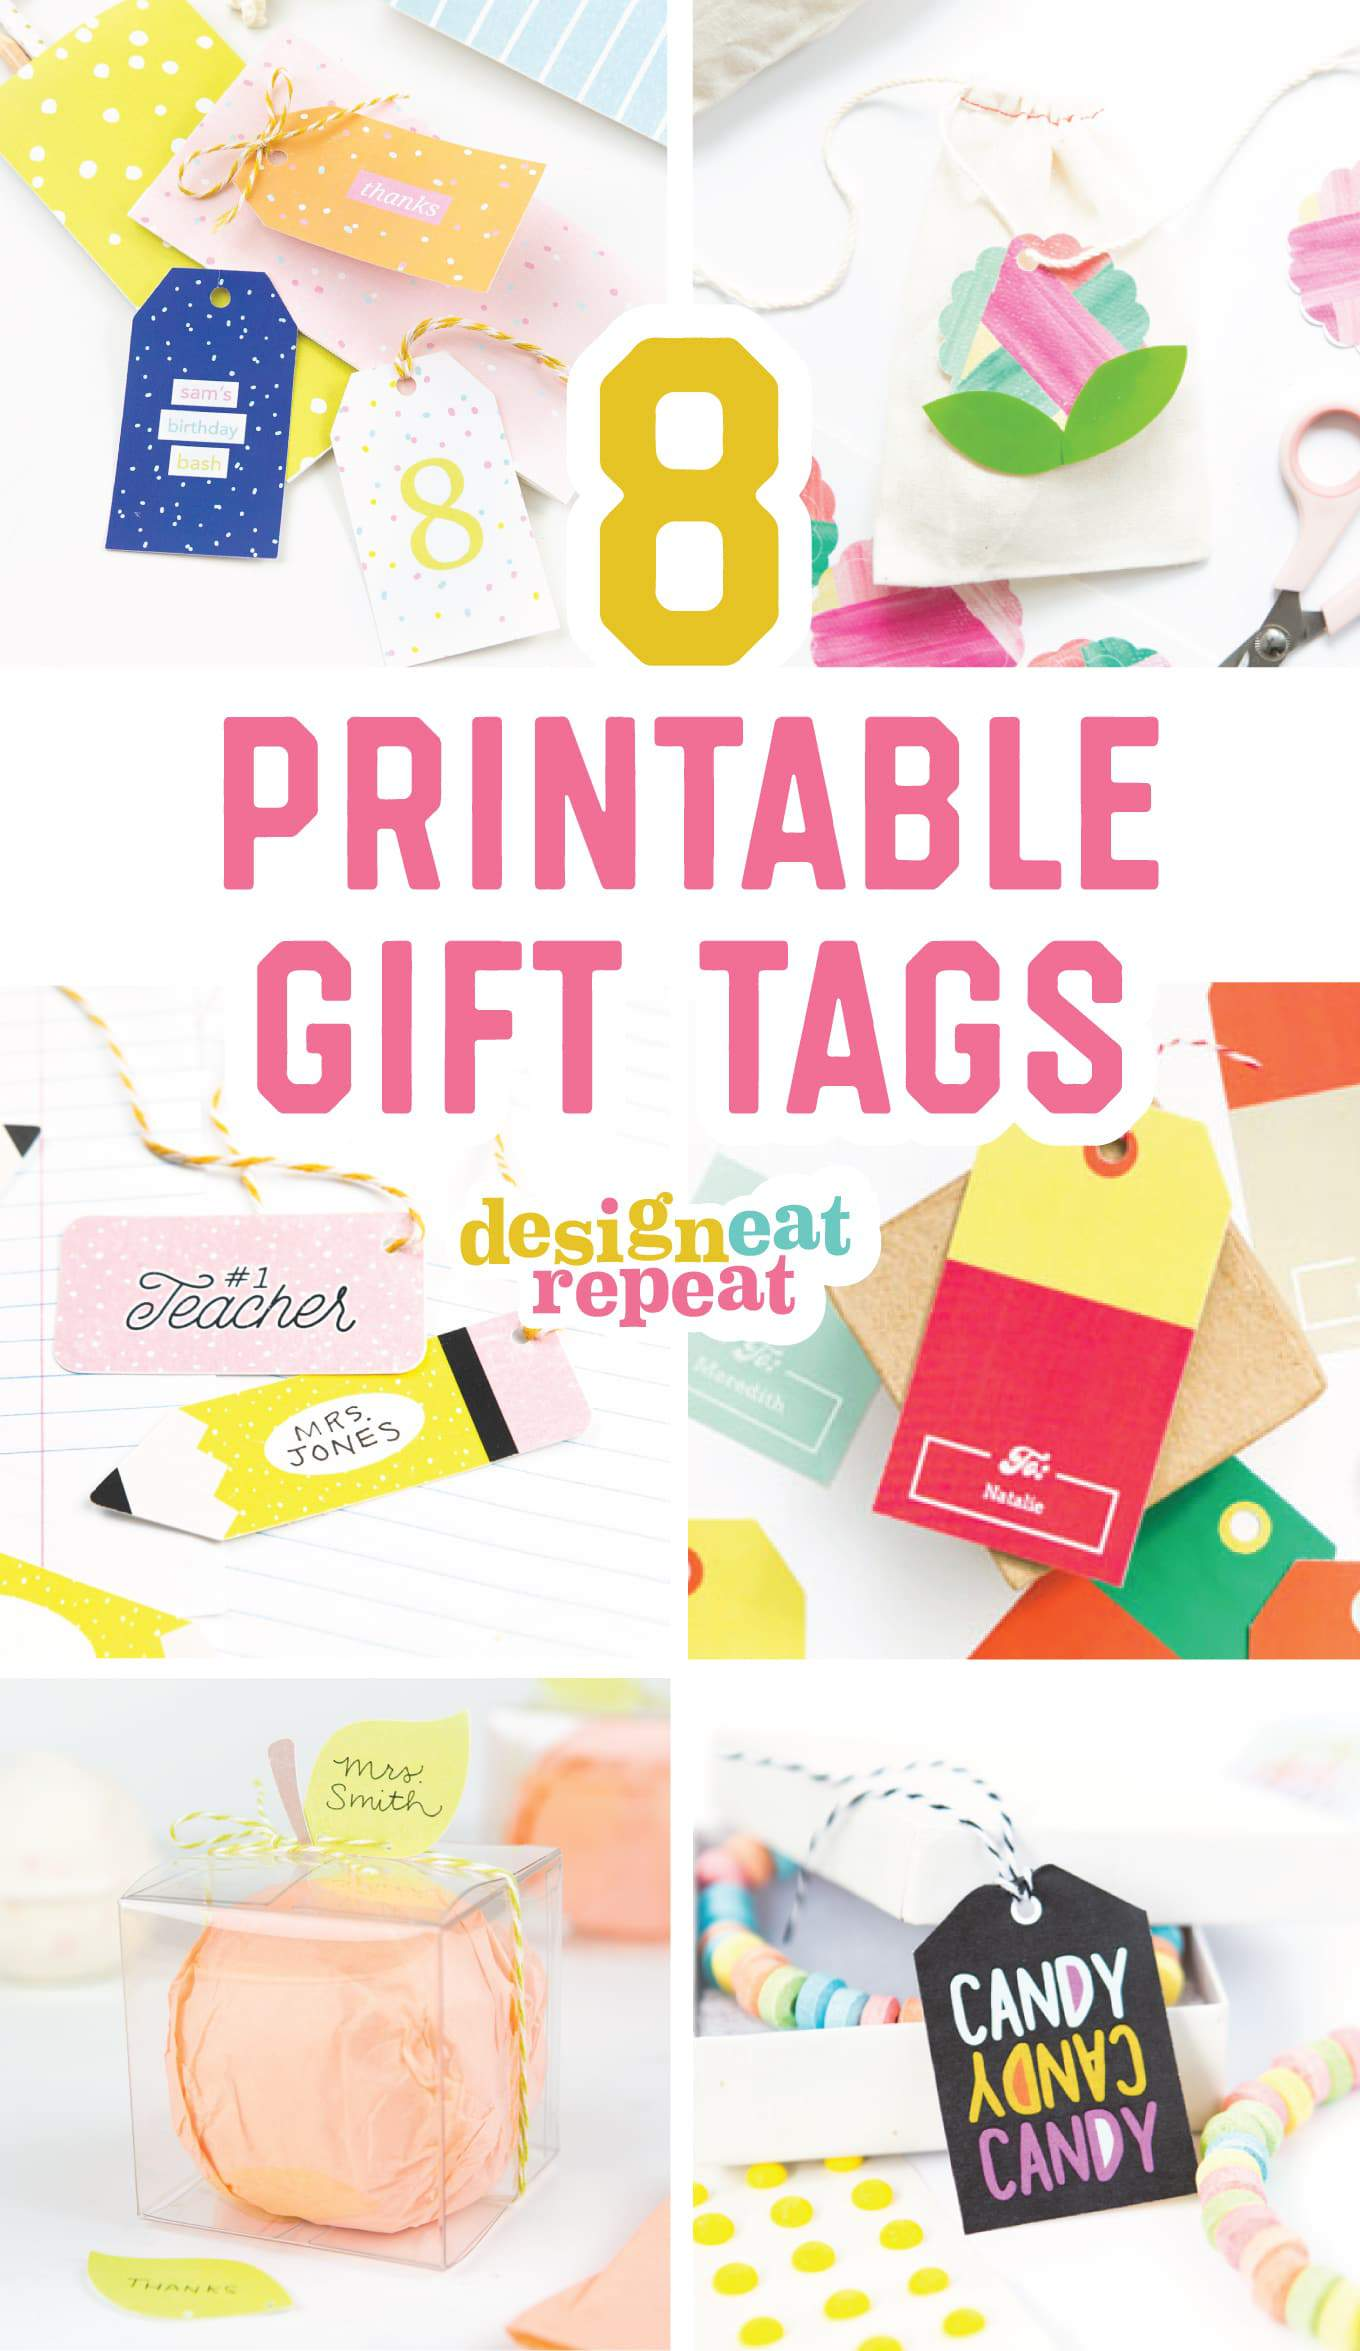 graphic regarding Free Printable Teacher Gift Tags identify 8 Colourful Free of charge Printable Present Tags For Any Social gathering!